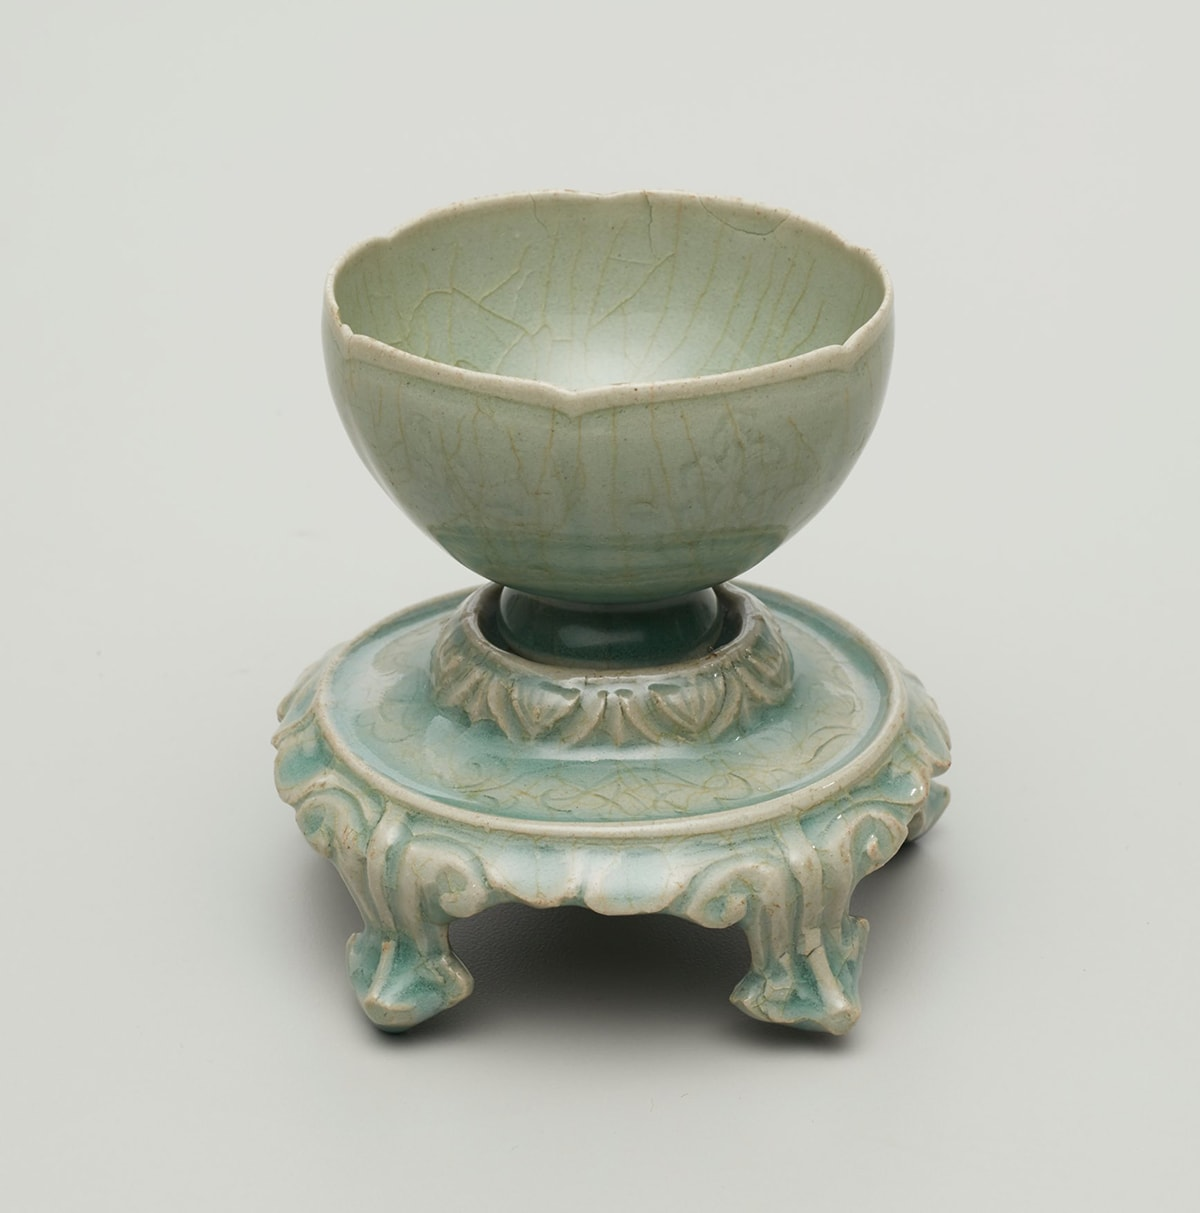 Image description: Foliated Cup and Stand with Floral Décor Korea, Jeollanam-do province, Gangjin kilns, Sadang-ri, light gray stoneware with incised and molded decoration under blue-green celadon glaze, 4 x 4 inches in diameter. A small round cup with a gently fluted rim and footed base sits on a round, decorated stand with five short legs. The cup and stand are a grayish-green with a crazed surface. The crazing creates a light brown, crackled pattern over the decorated surfaces of the work. The cup with its lip-rim mimicking a shallow flower petal edge, has molded floral pattern. The much narrower foot of the cup appears as a deeper green color and sits snugly in the raised stand. The stand's upper tier is decorated with stylized V shapes before smoothly widening horizontally. A raised rim separates the upper tier from the five decorated legs of the stand. The legs end in a blunted point with two seeming to be too short to rest directly on the display surface.